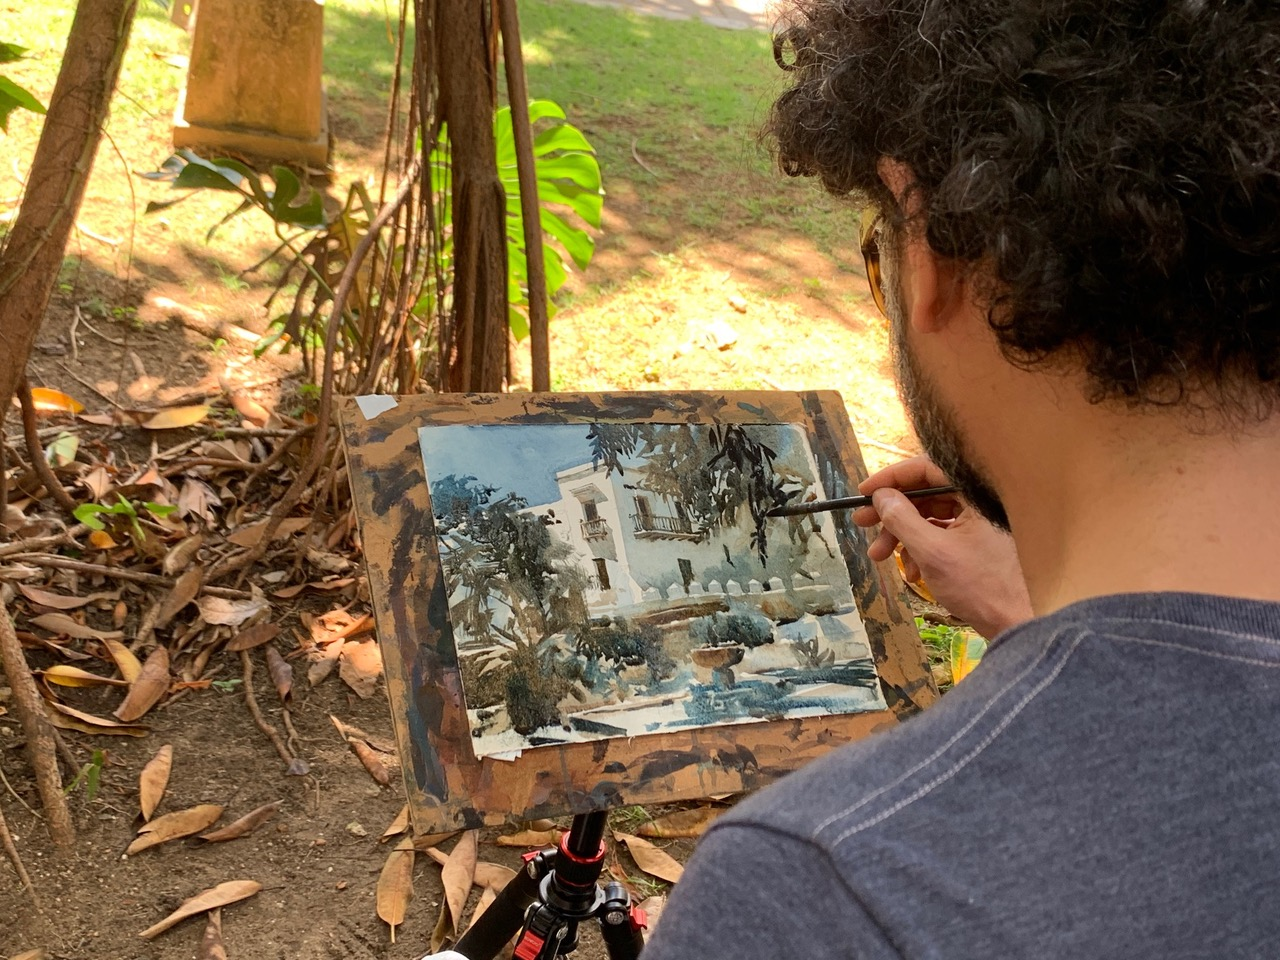 WORKSHOP: INTRO TO WATERCOLOR TECHNIQUES    INSTRUCTOR: MARCELO DALDOCE   July 25-28, 2019  10:00am-4:00  $450